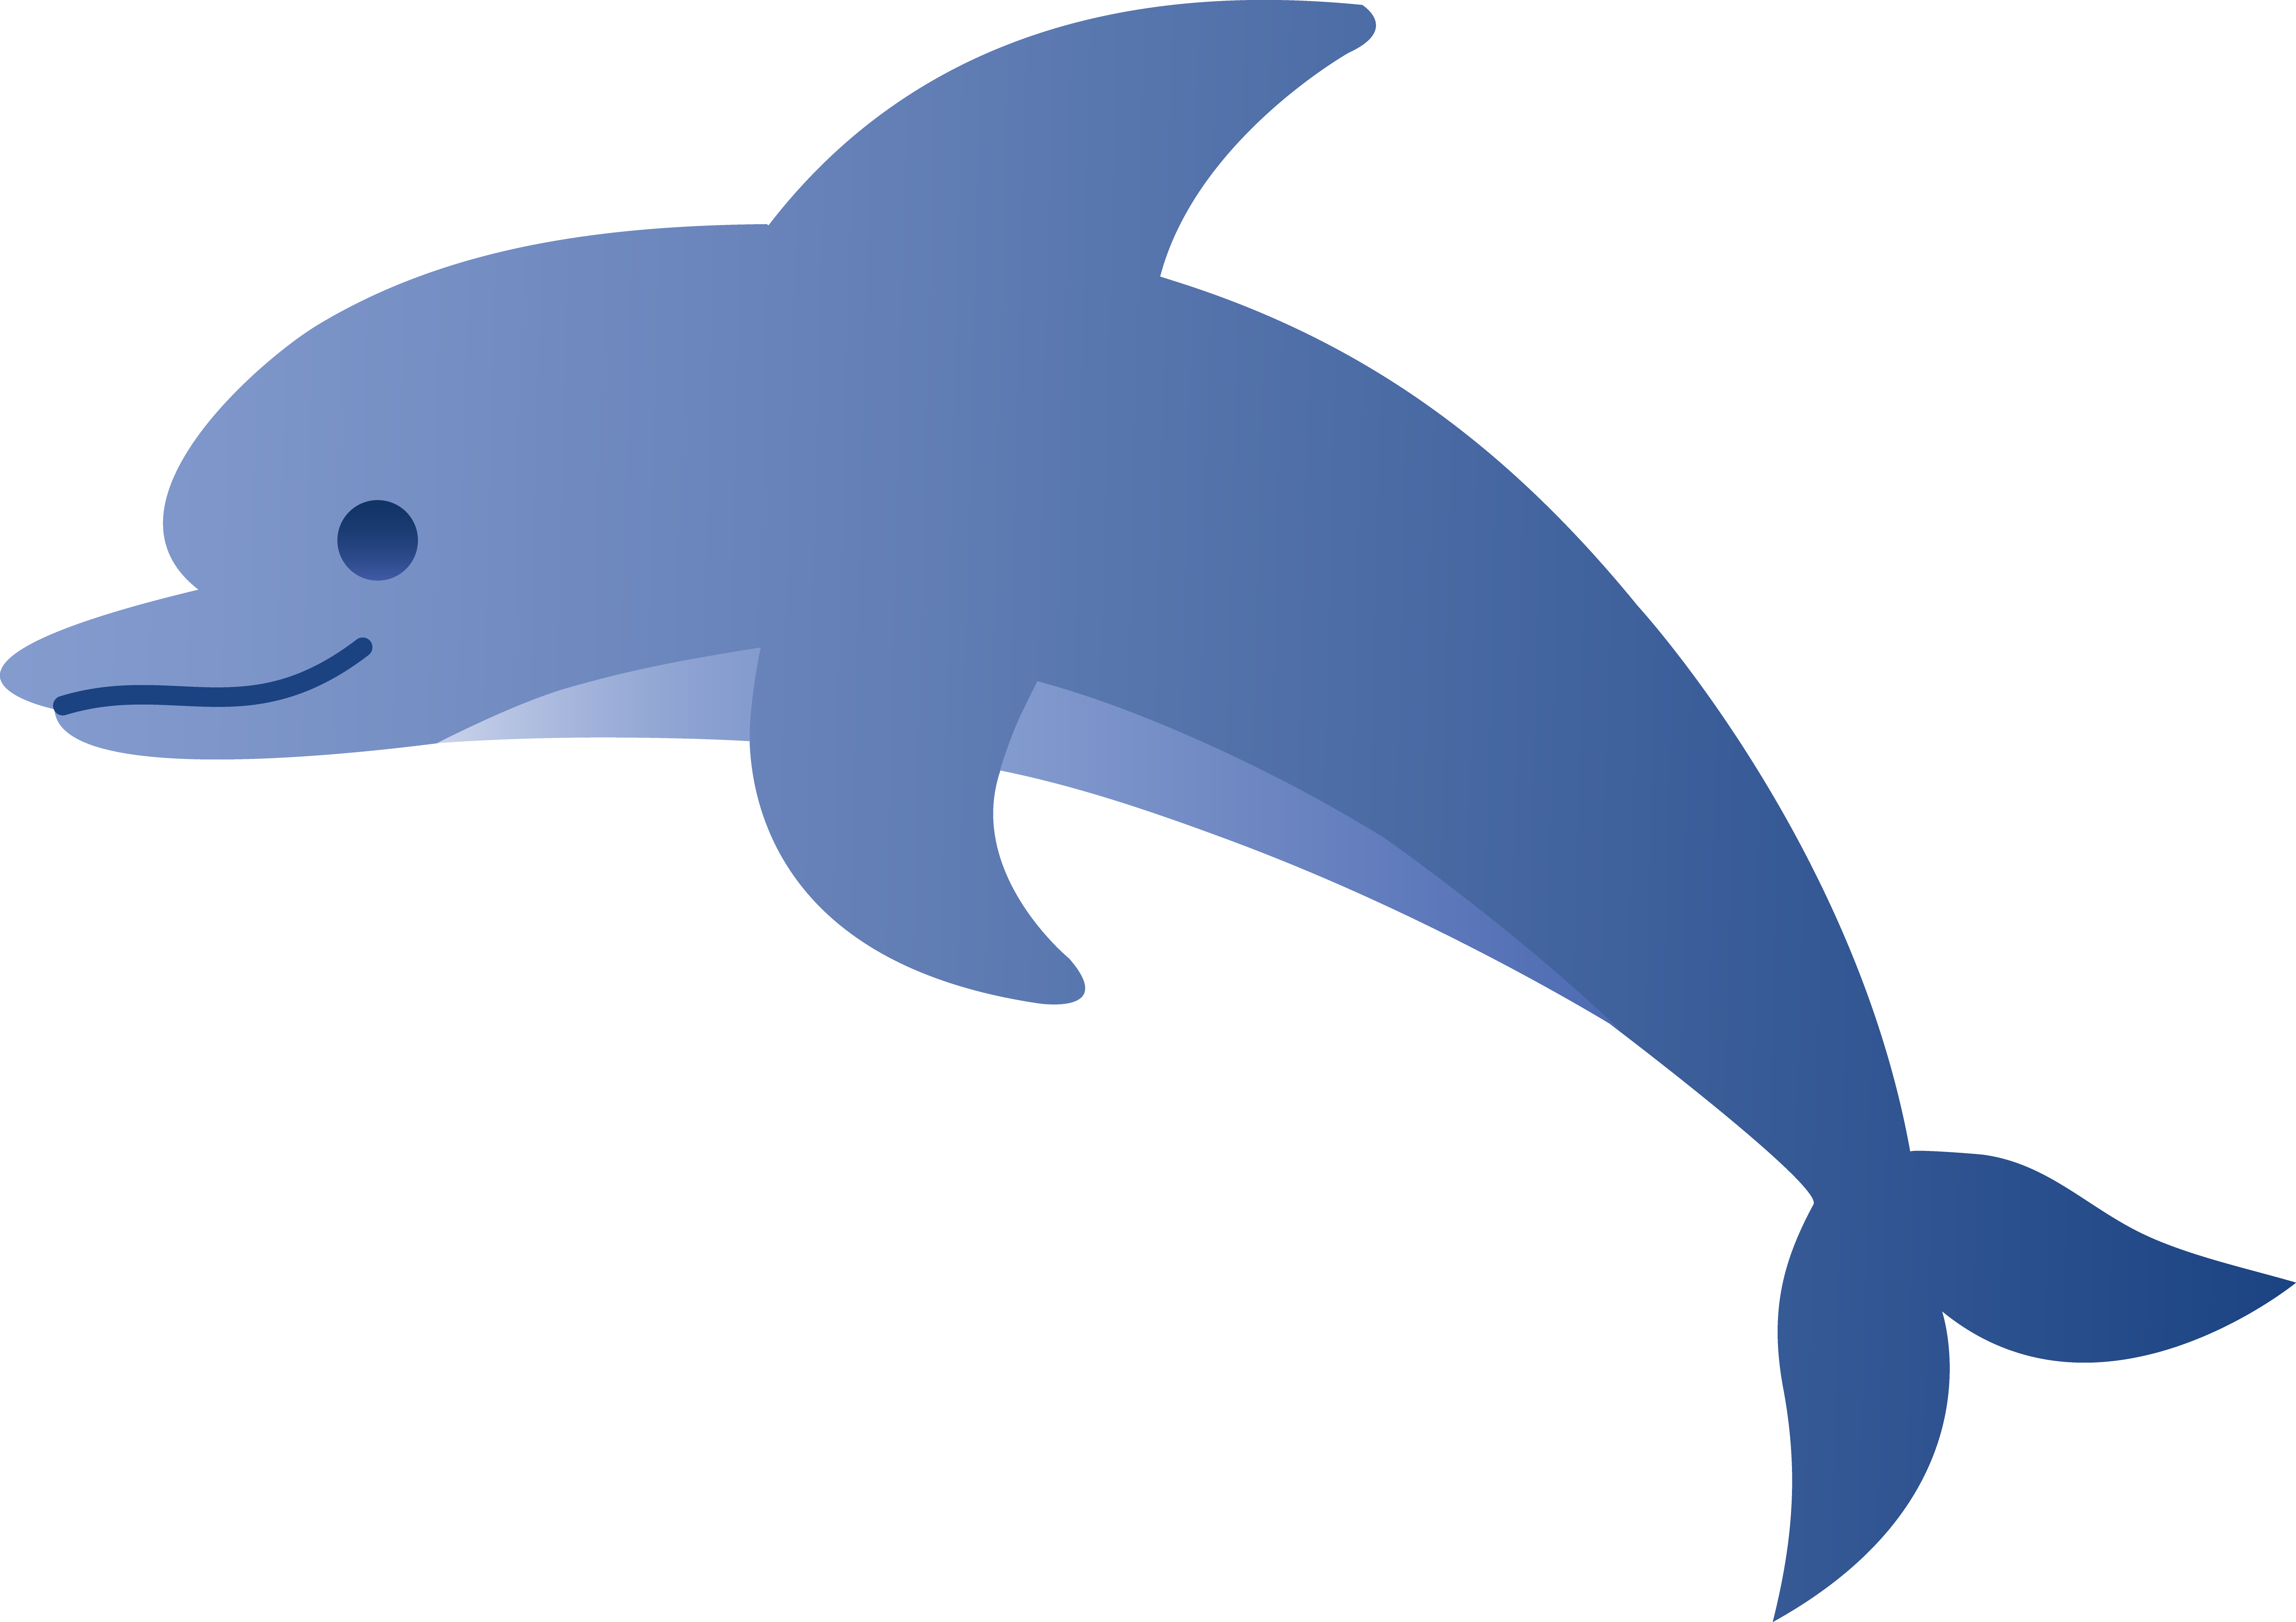 Bottlenose Dolphin clipart Free Images Dolphin Panda Clipart